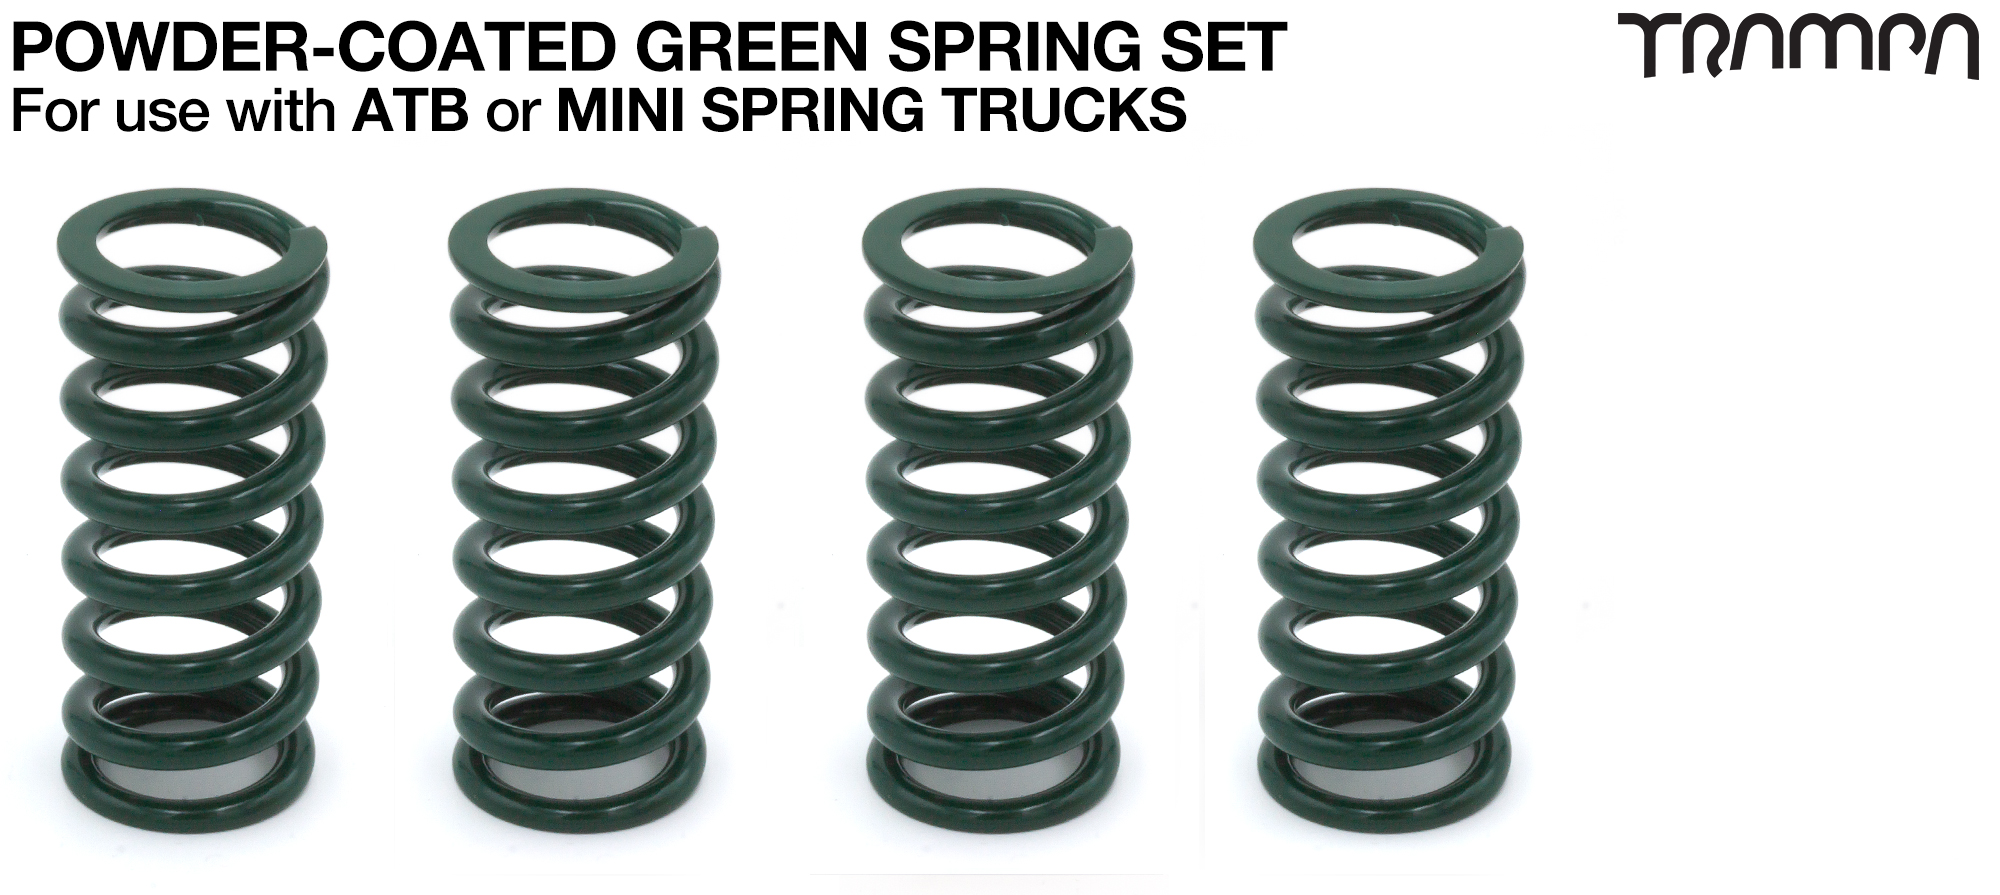 GREEN Powder Coated Springs